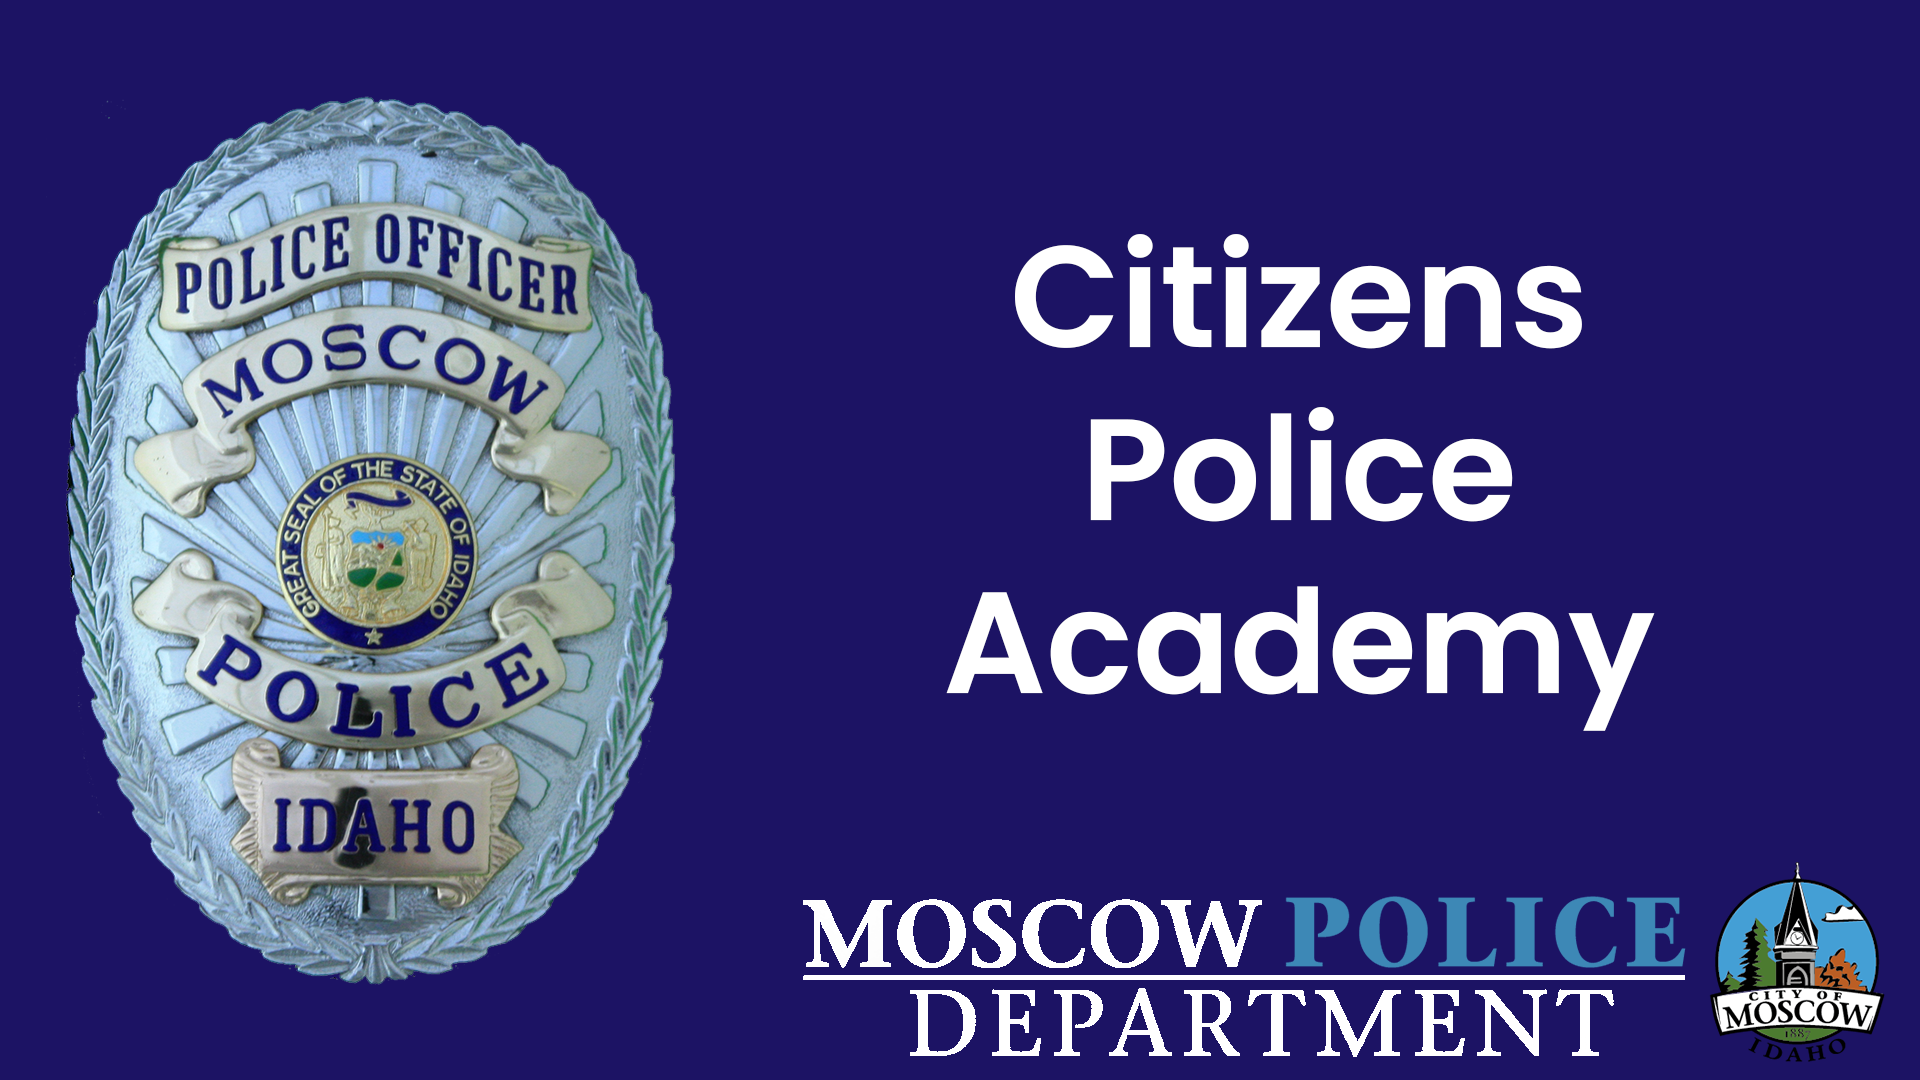 Citizens Police Academy title